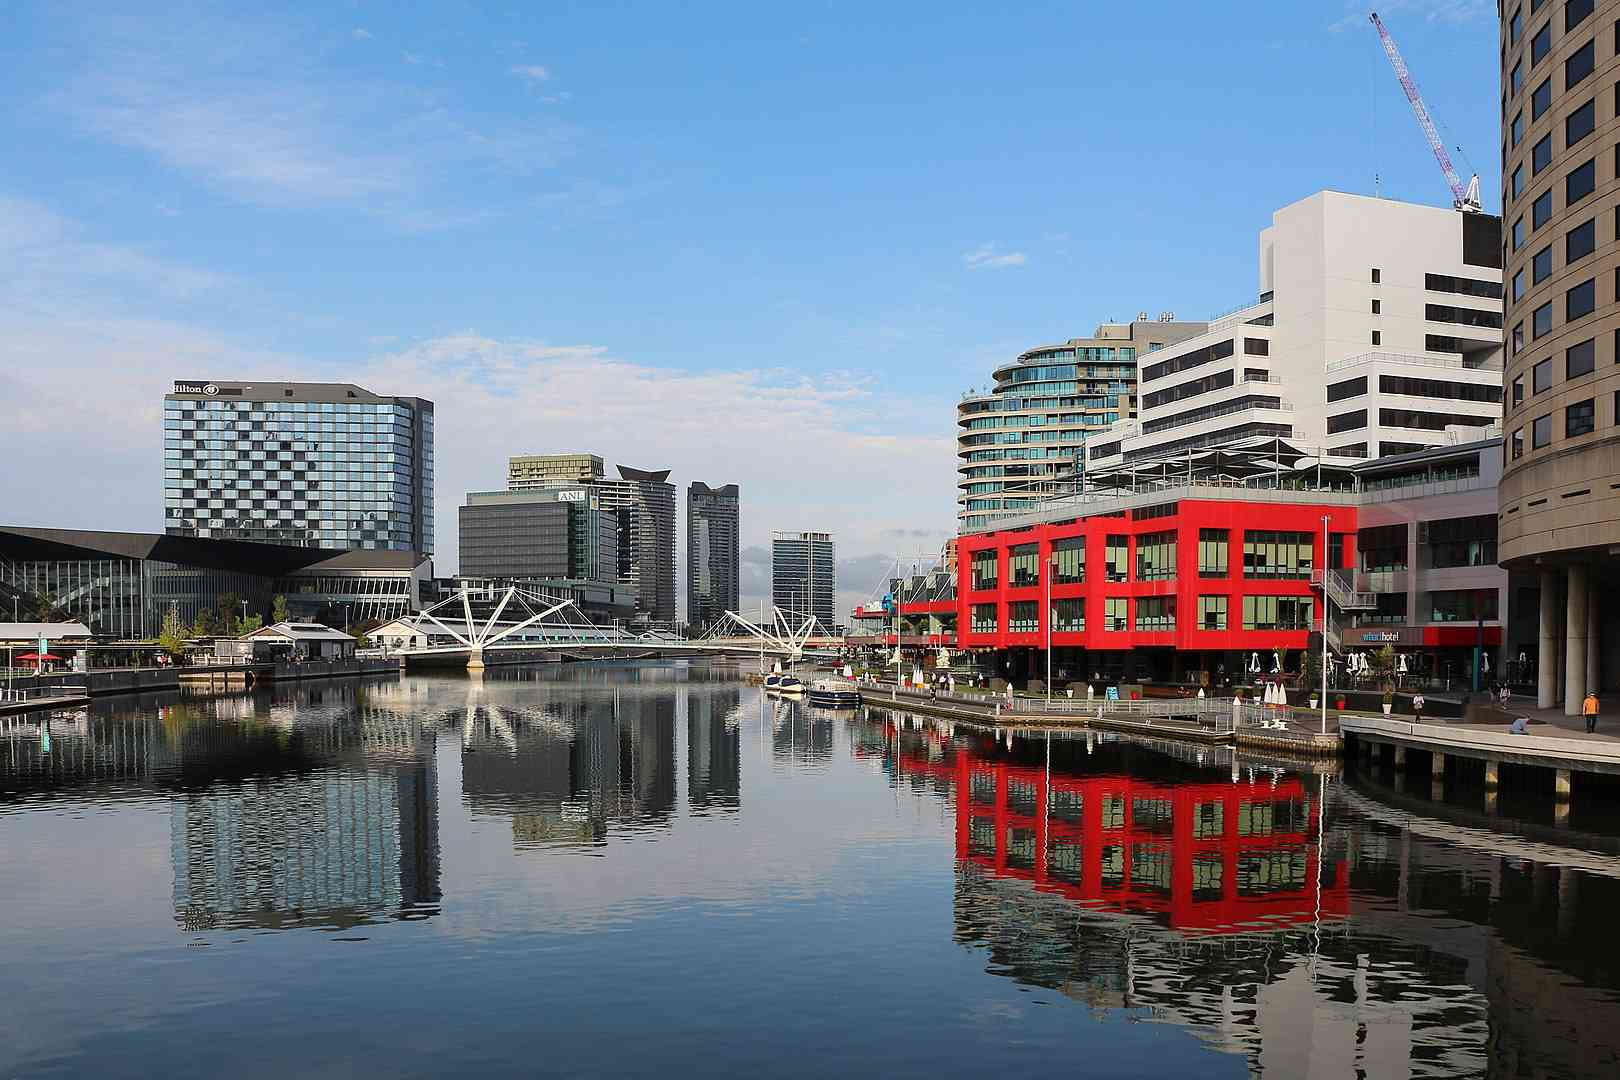 View of the flat Yarra River surrounded by commercial buildings, one framed in red along the riverfront with a blue sky and white clouds above